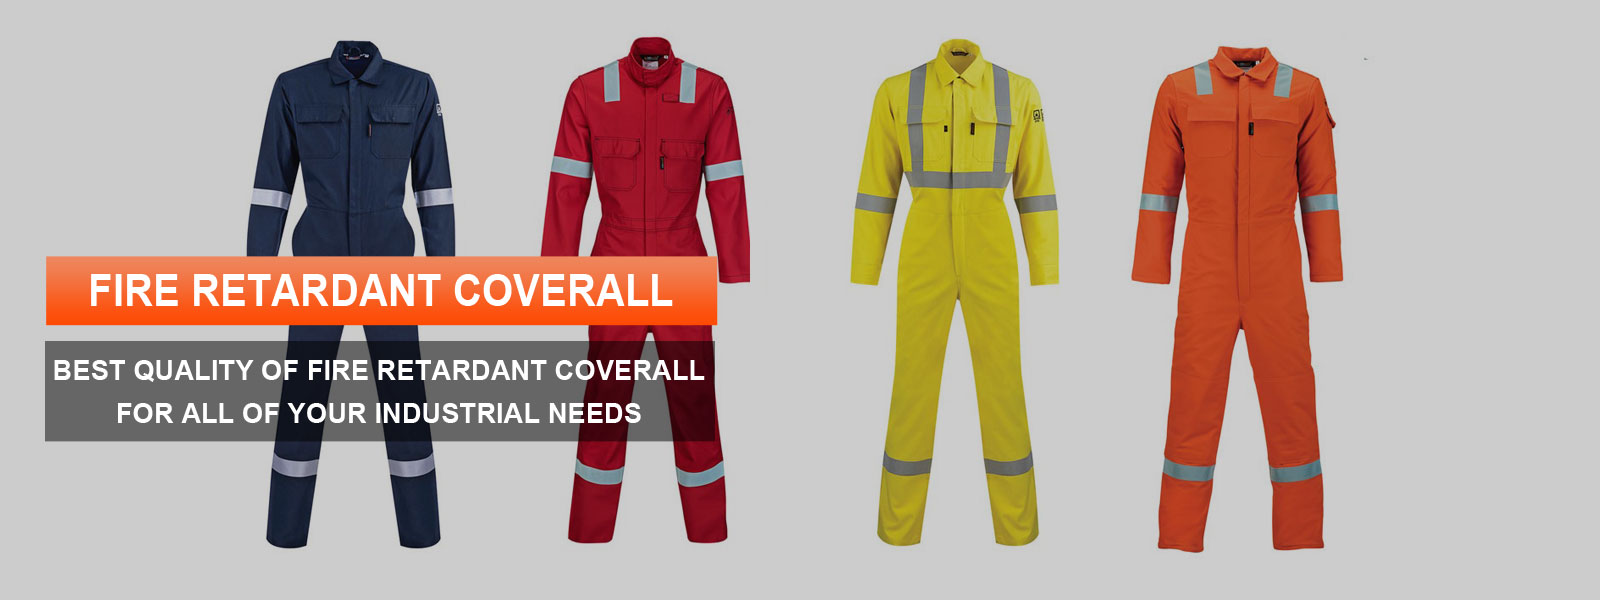 Fire Retardant Coverall Manufacturers in Bosnia and Herzegovina